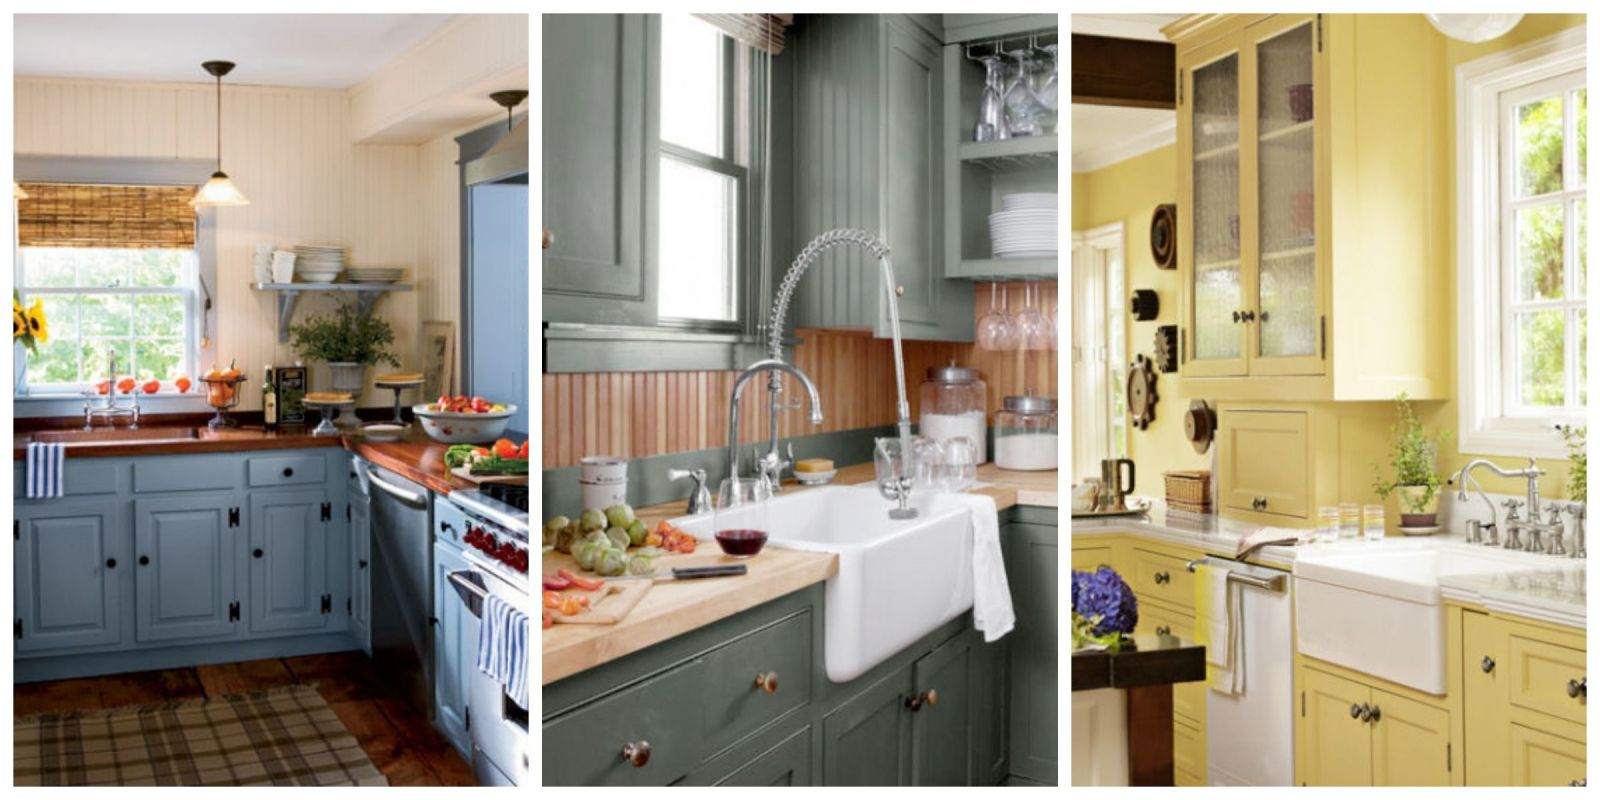 Paint Suggestions 15+ best kitchen color ideas - paint and color schemes for kitchens